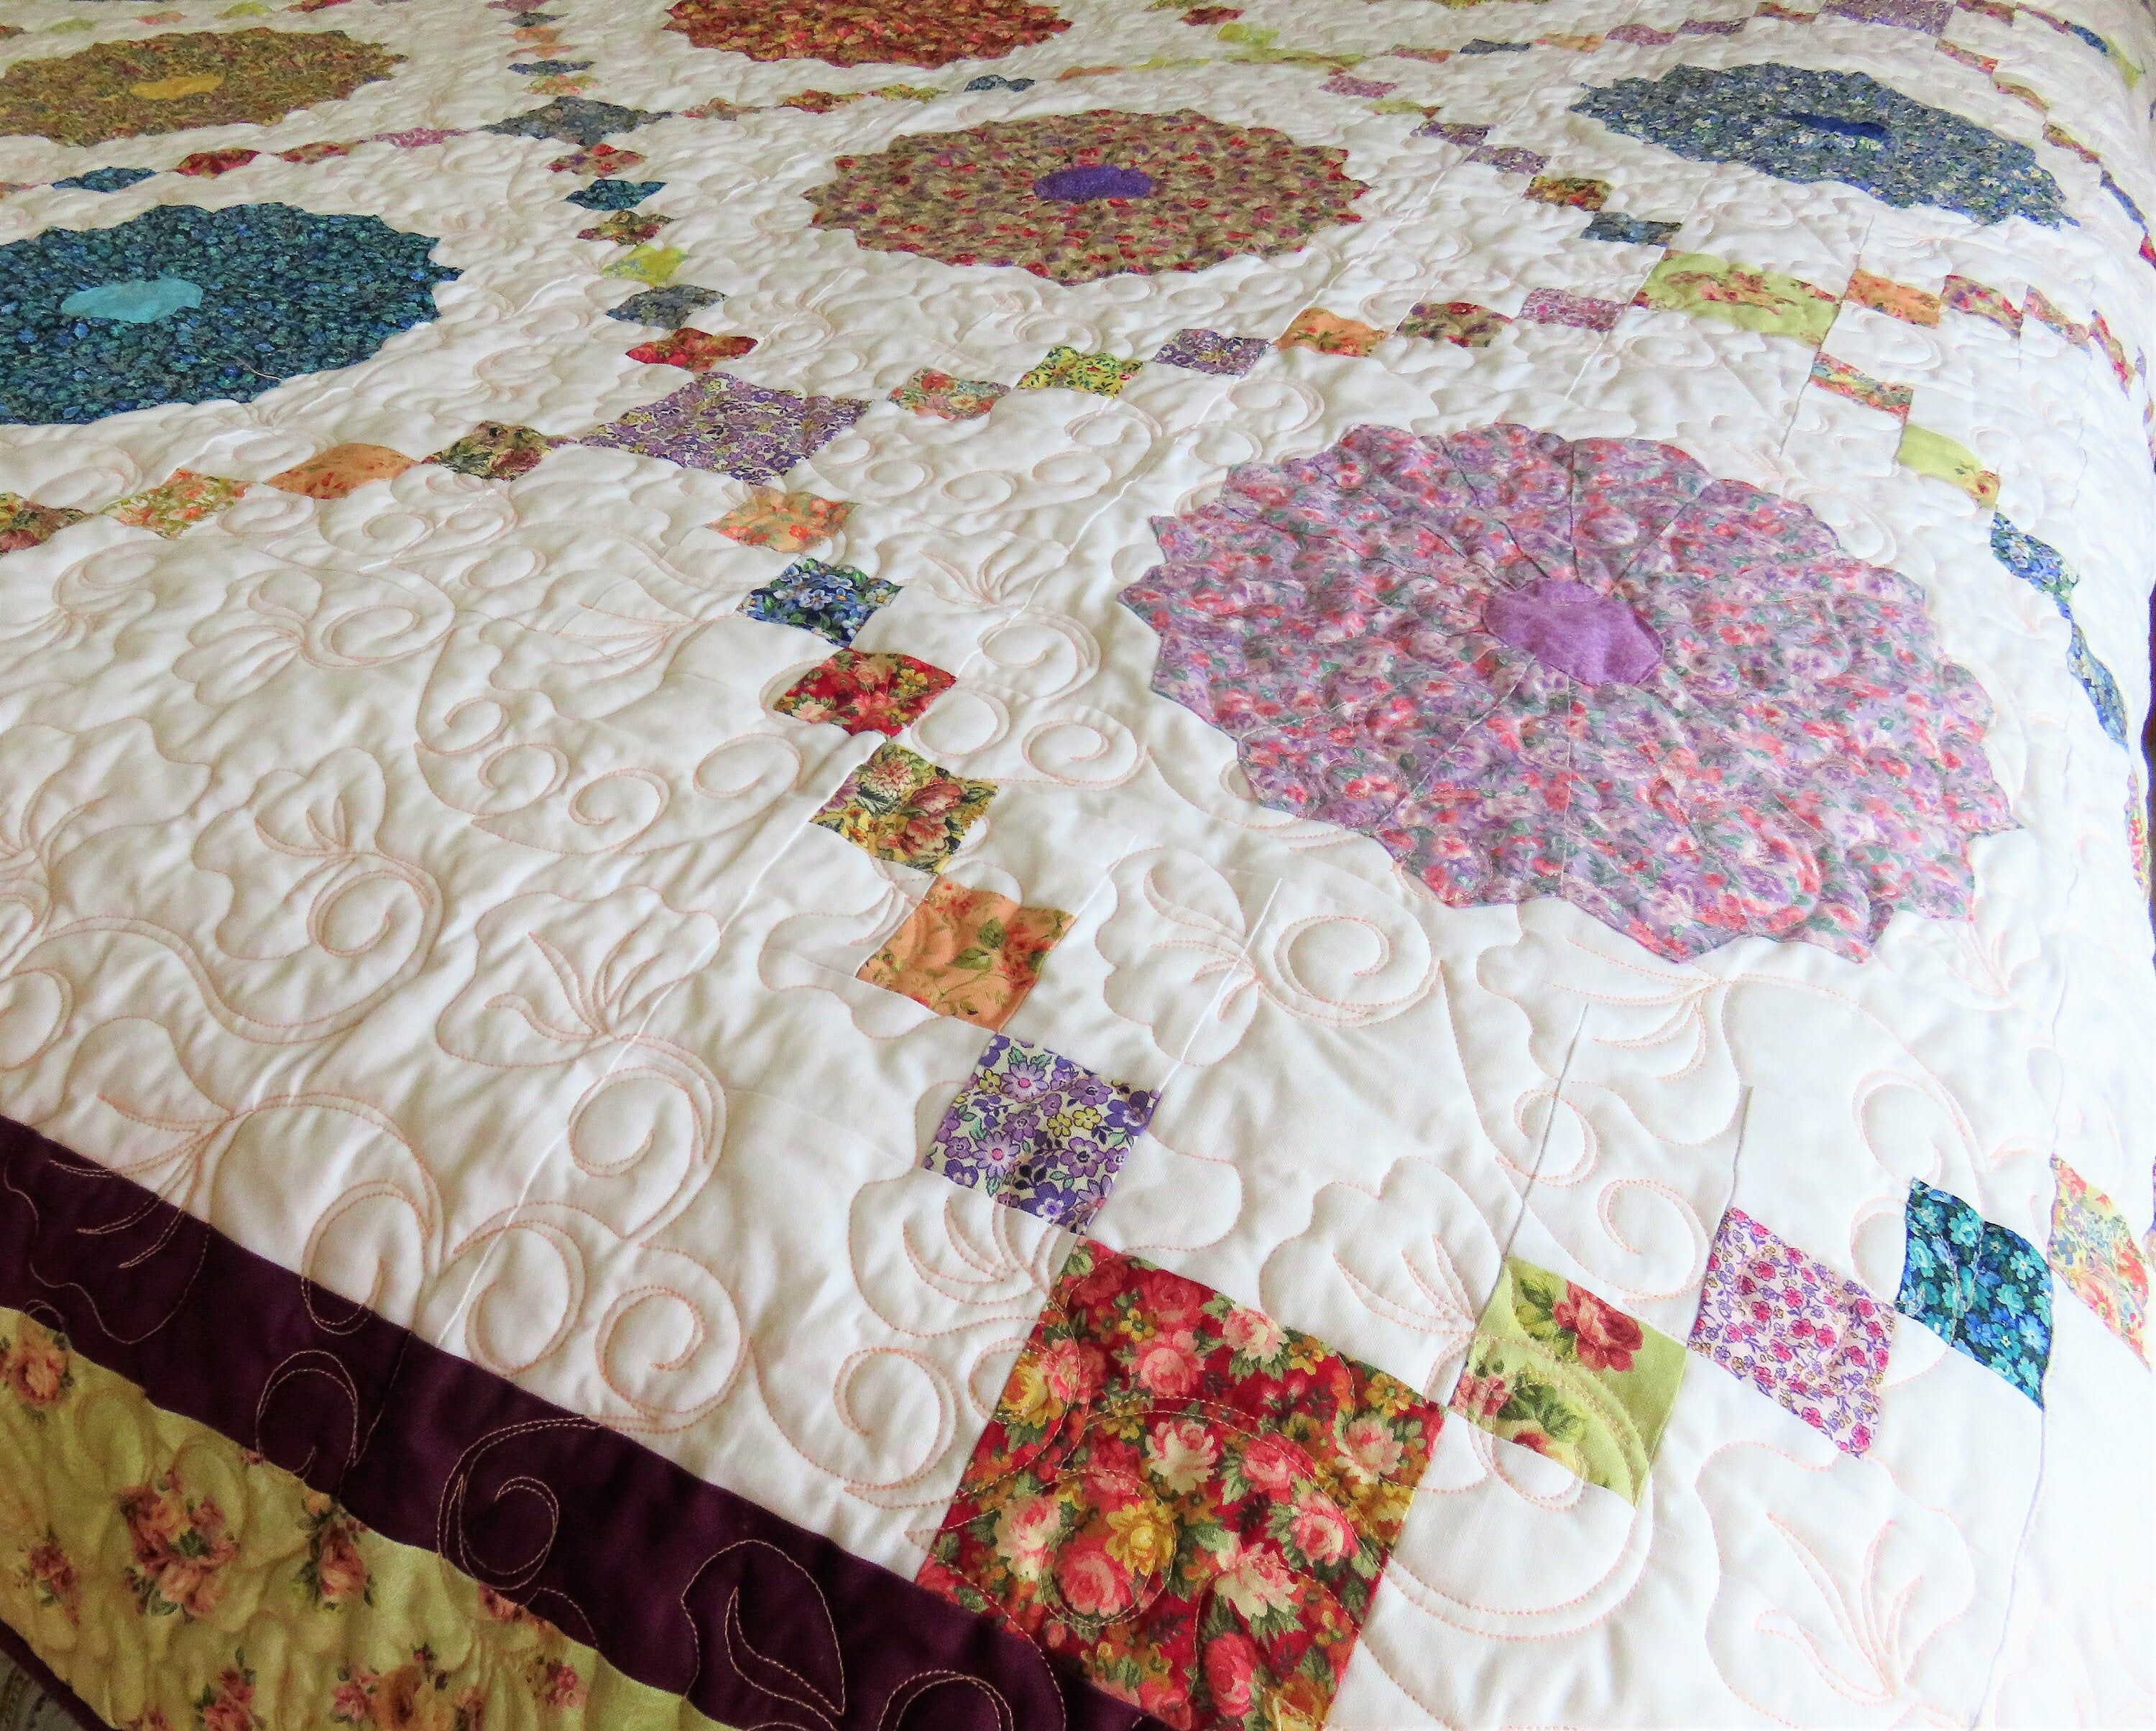 Handmade Full Size Quilt For Sale Floral Quilt Bedding Custom Quilting Floral Full Size Quilt Queen Coverlet Large Lap Blanket In 2020 Quilts For Sale Quilt Bedding Vintage Quilts